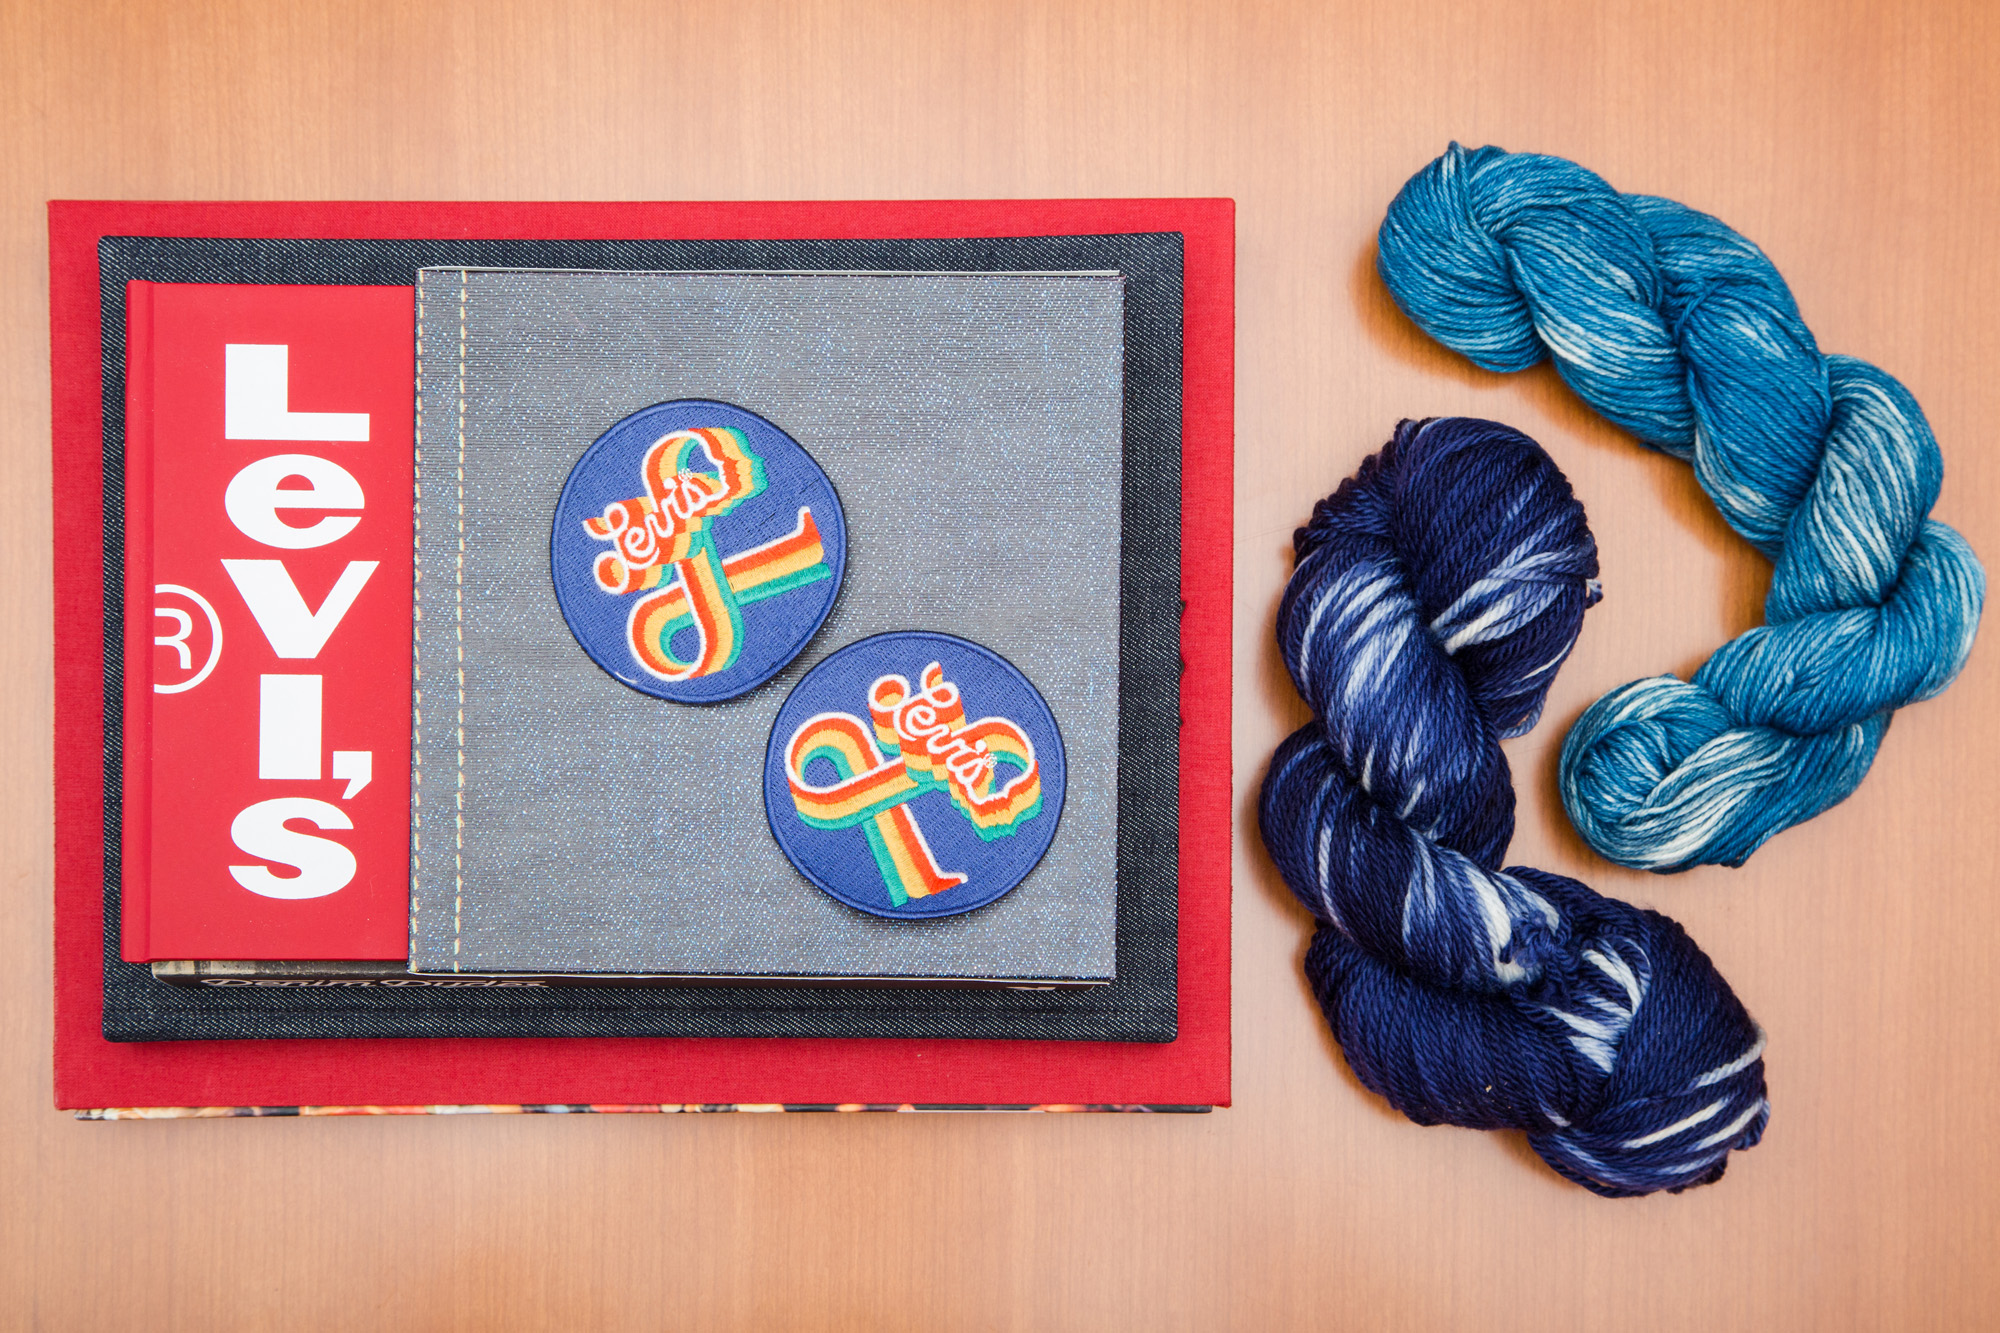 Love Your Levi's? You Can Thank Karyn Hillman for That